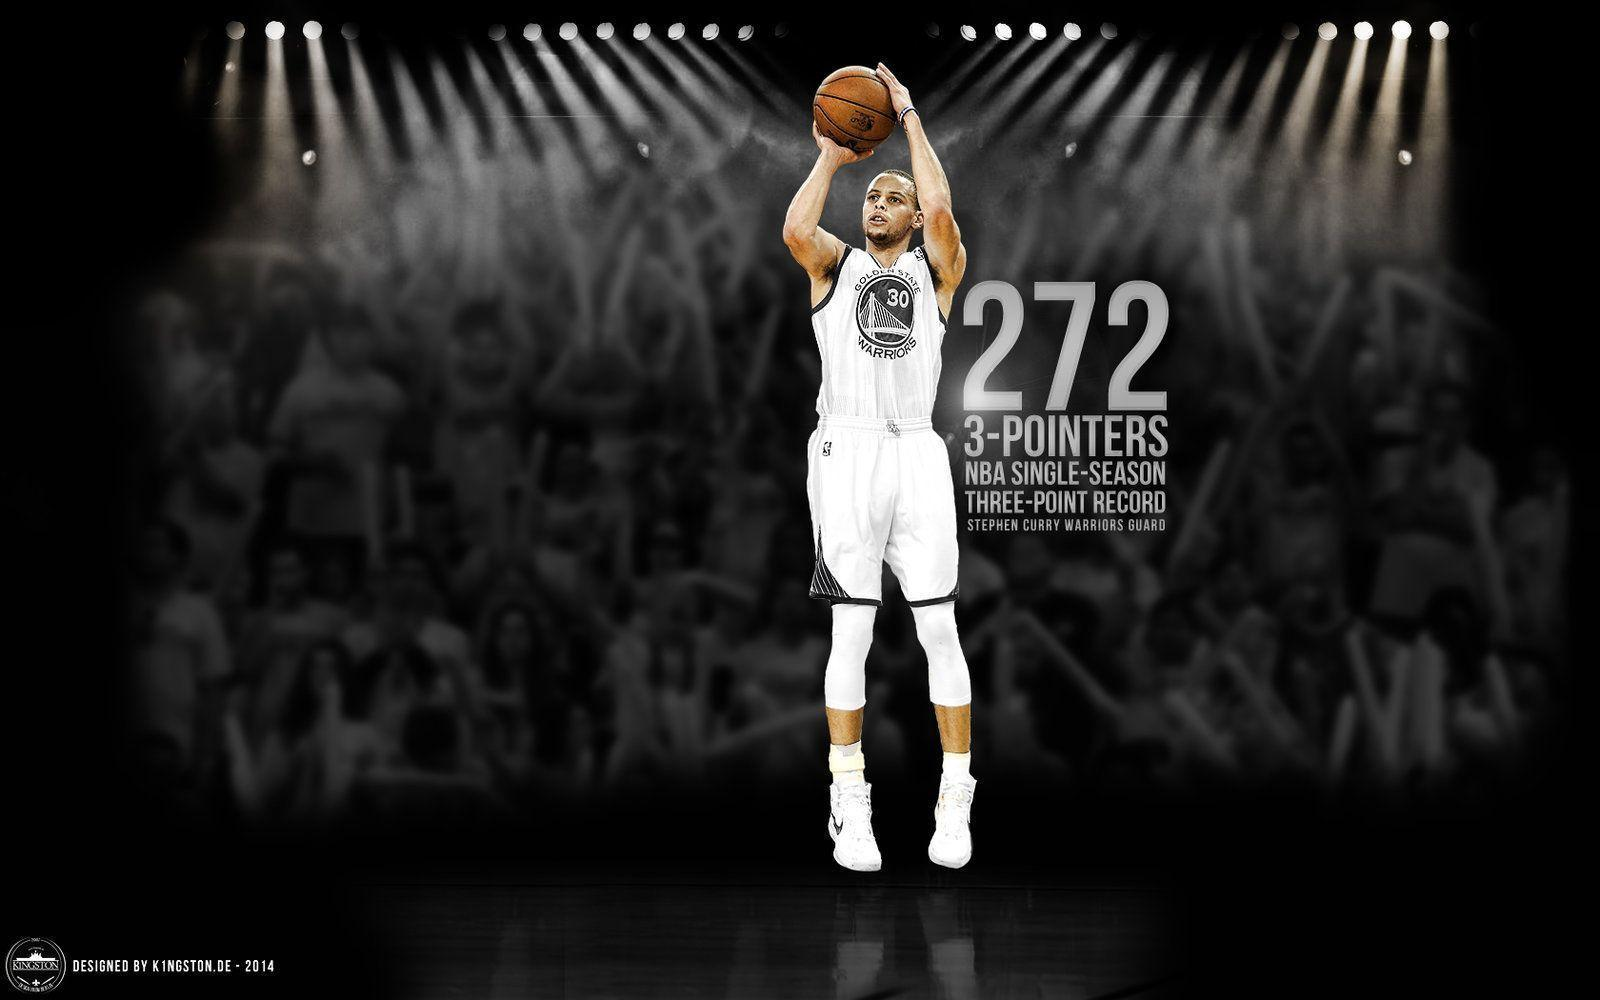 Stephen curry 3 points nba record | stephen curry wallpaper ...